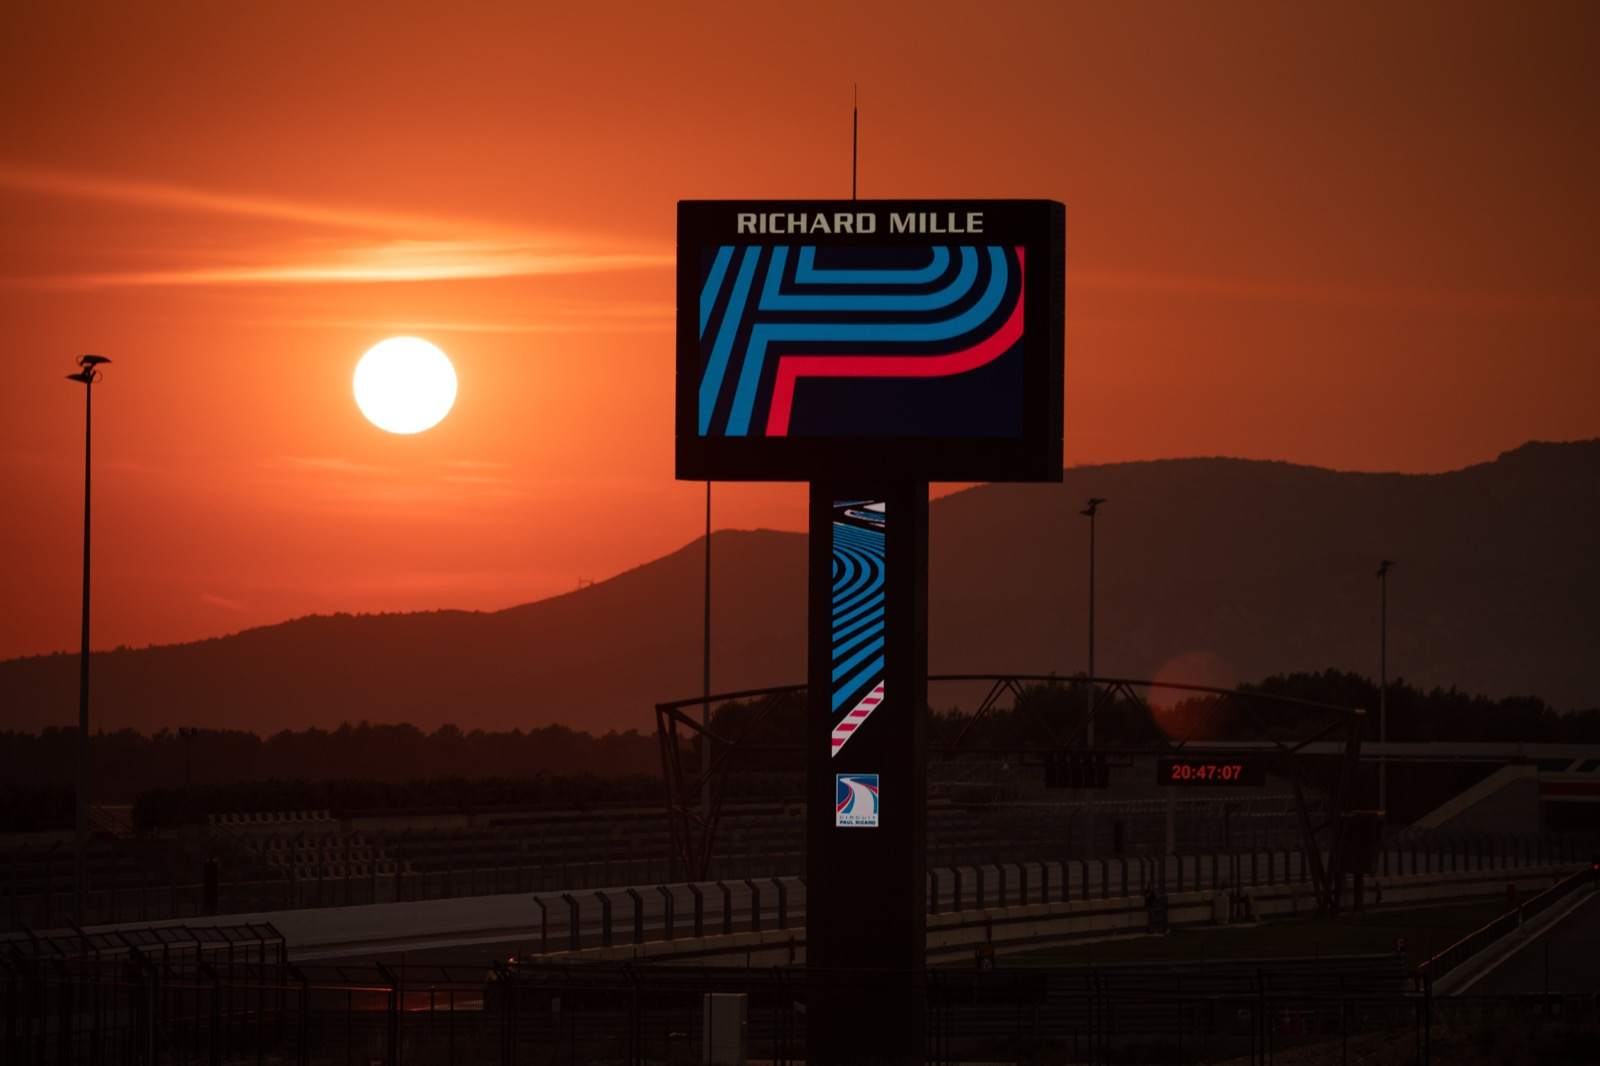 Richard Mille & Paul Ricard